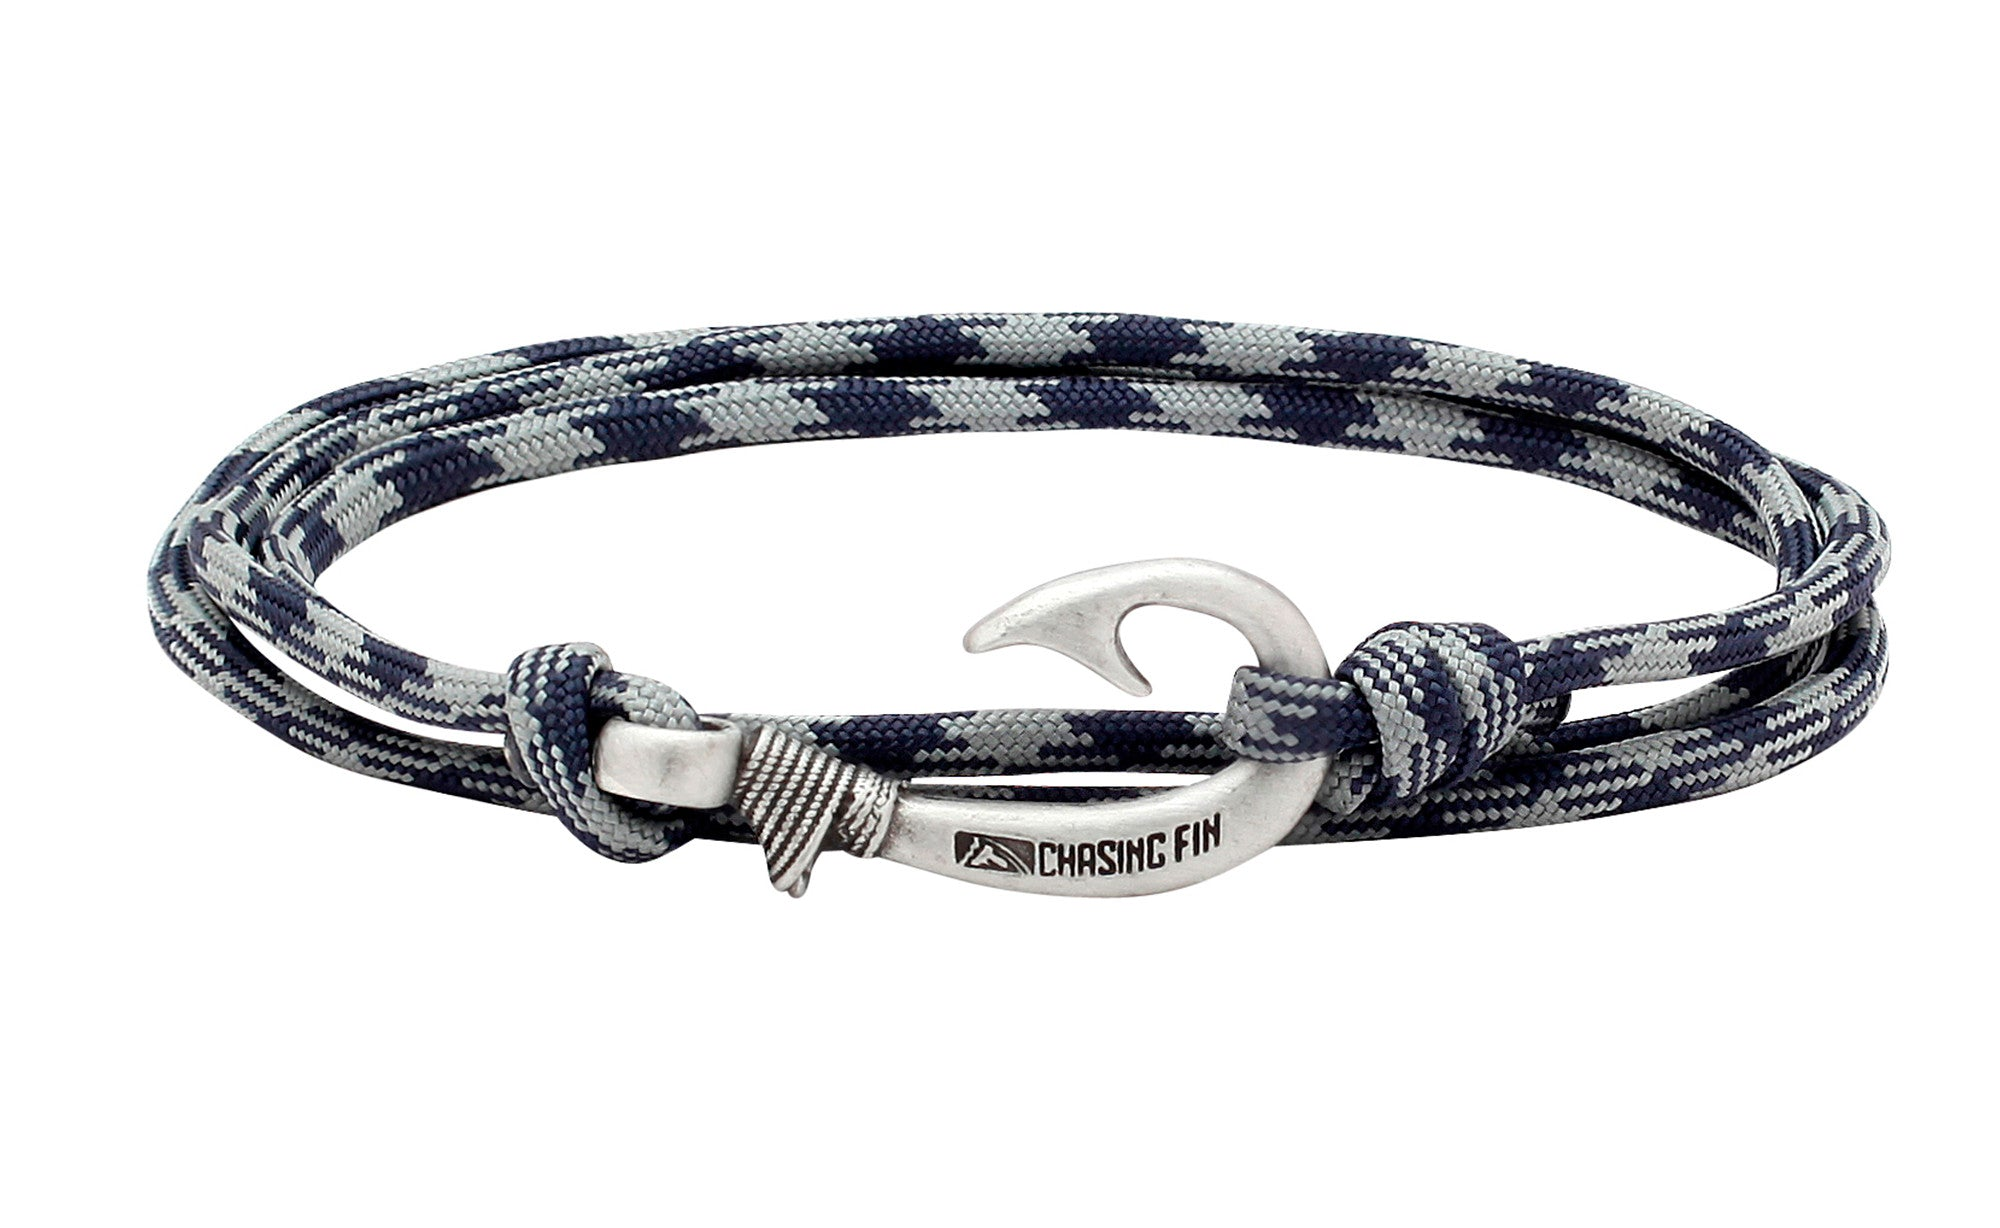 navyblue single casing blue singlecasingbracelet hk silver navy sp miansai end bracelet